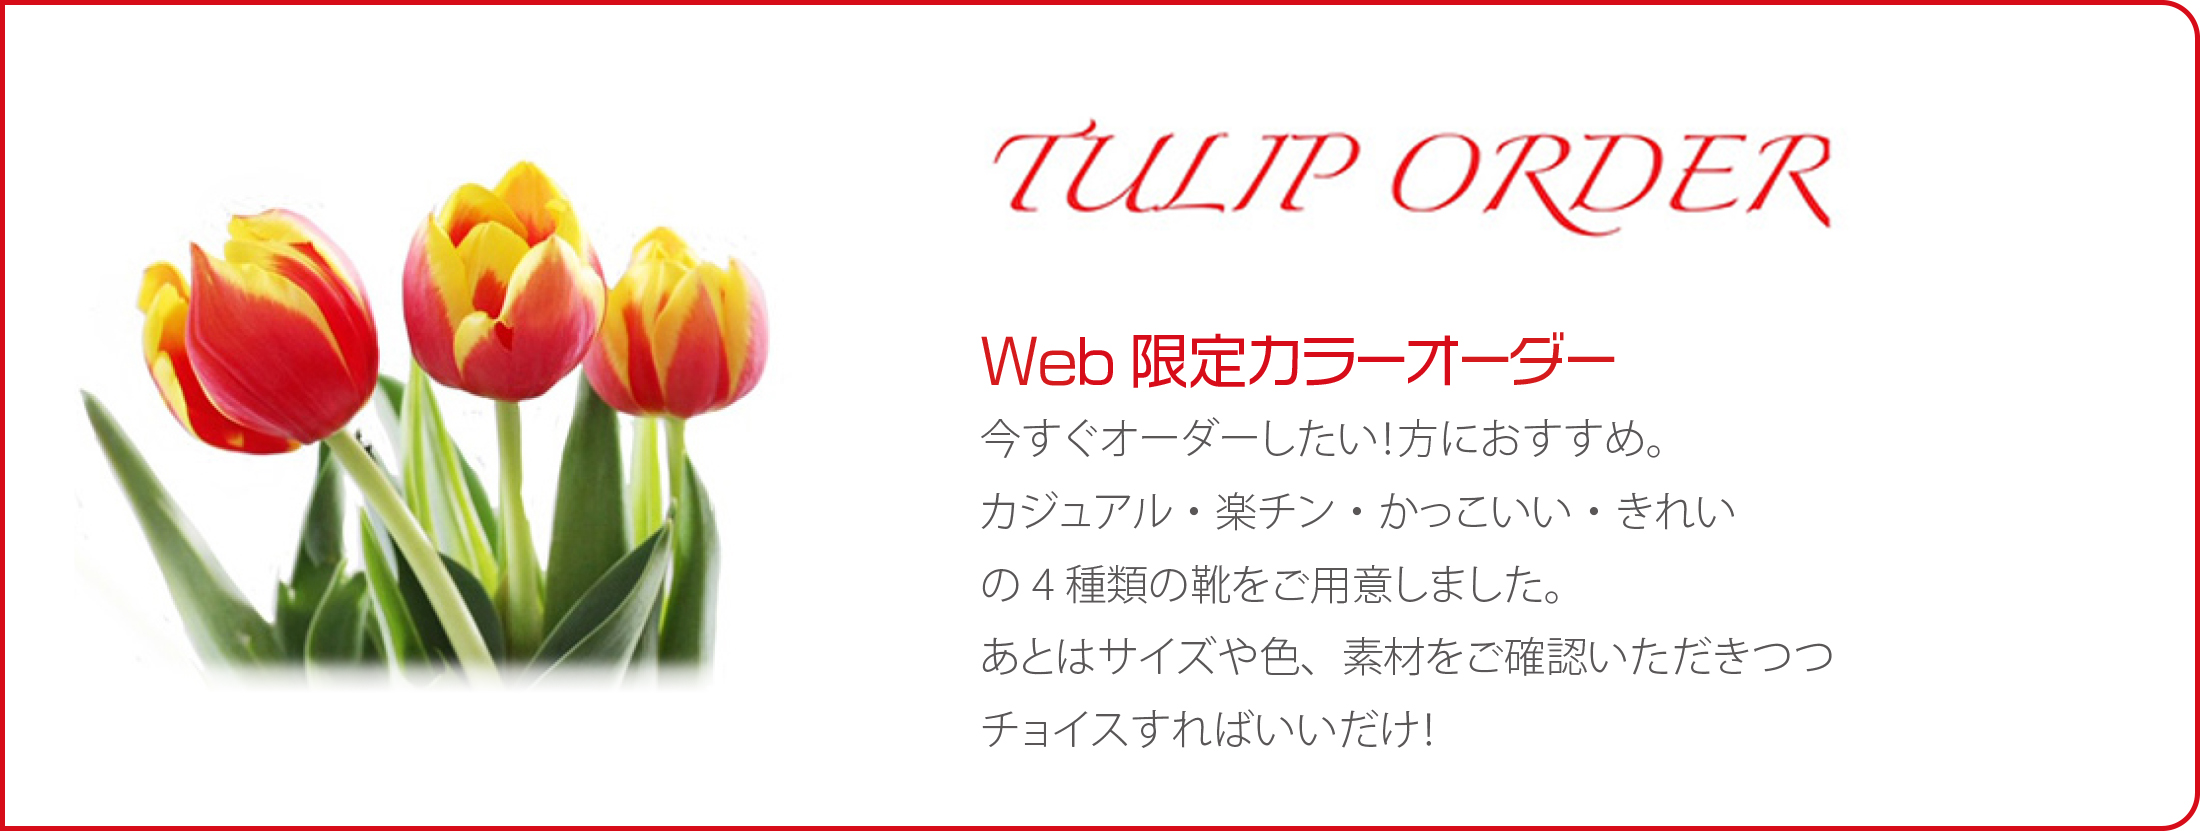 Ordermain_tulip